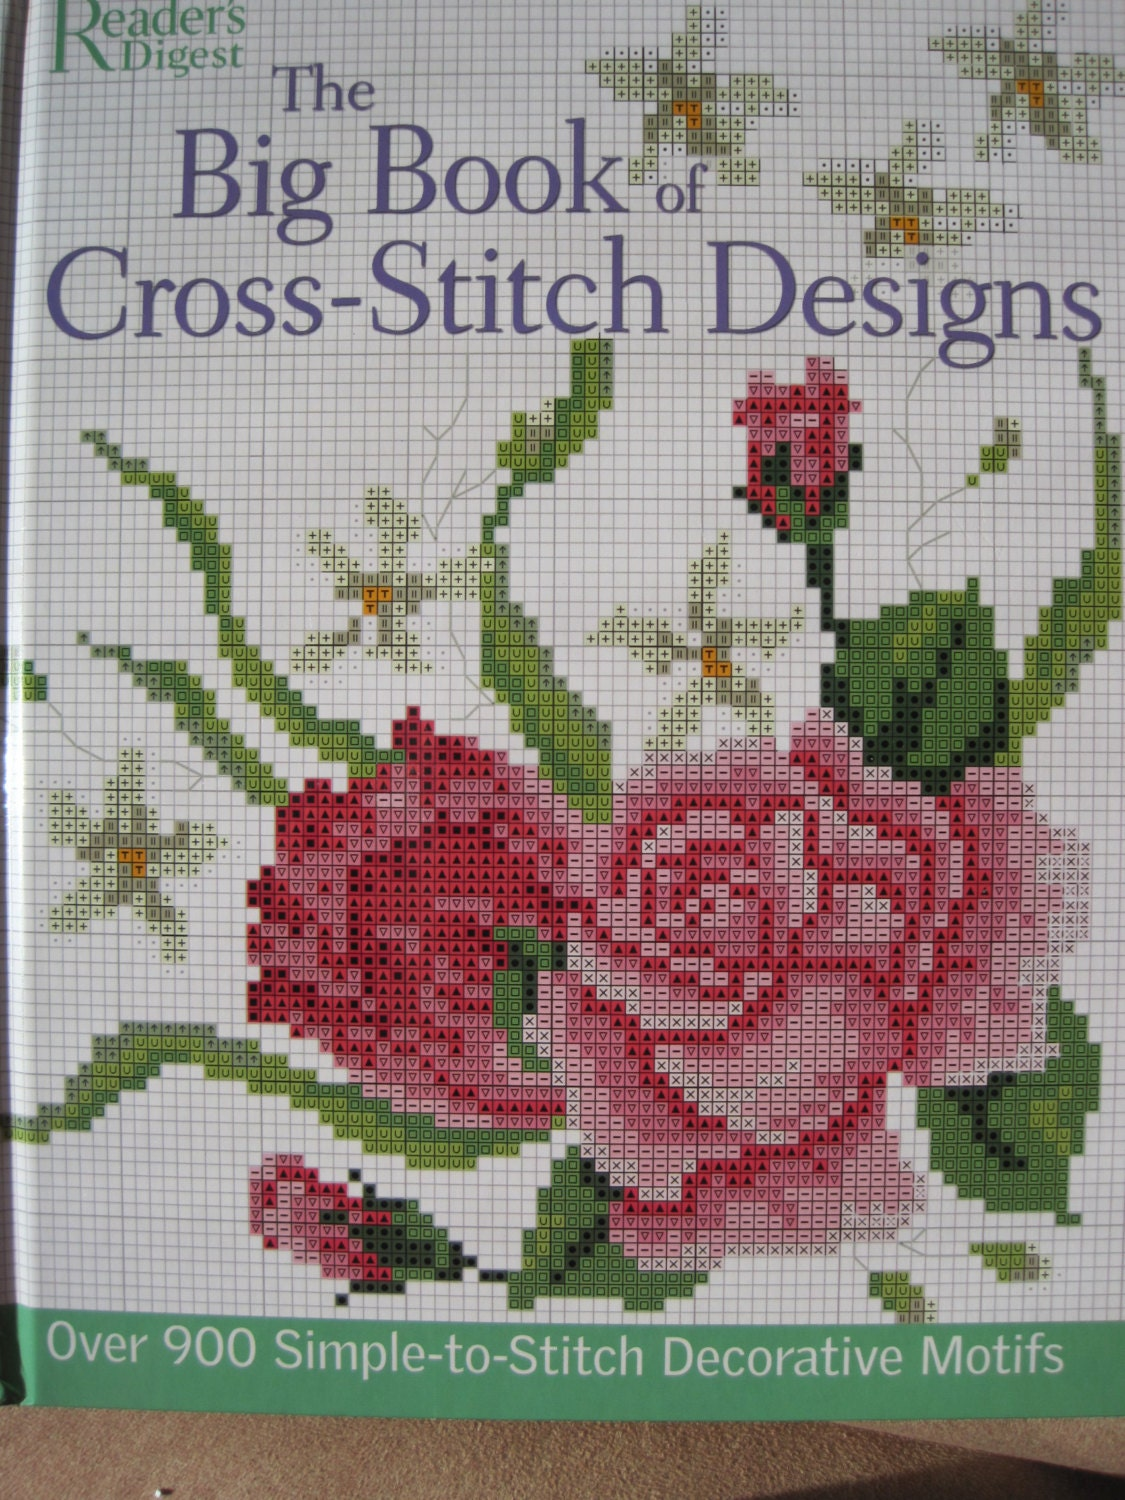 Cross stitch book the big of designs